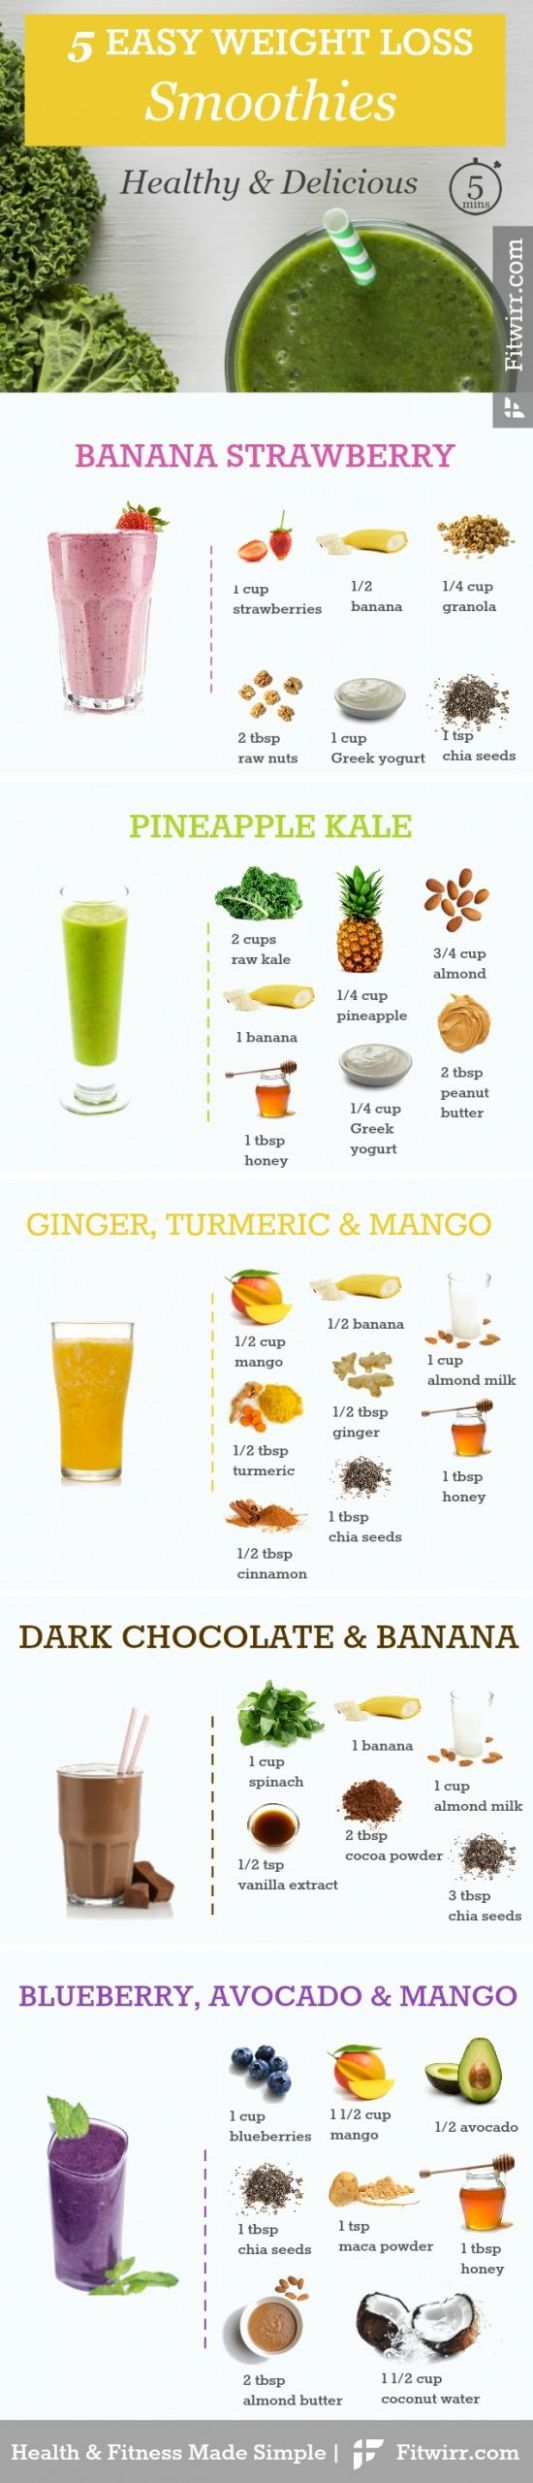 12 Best Smoothie Recipes for Weight Loss - Recipes Of Chef